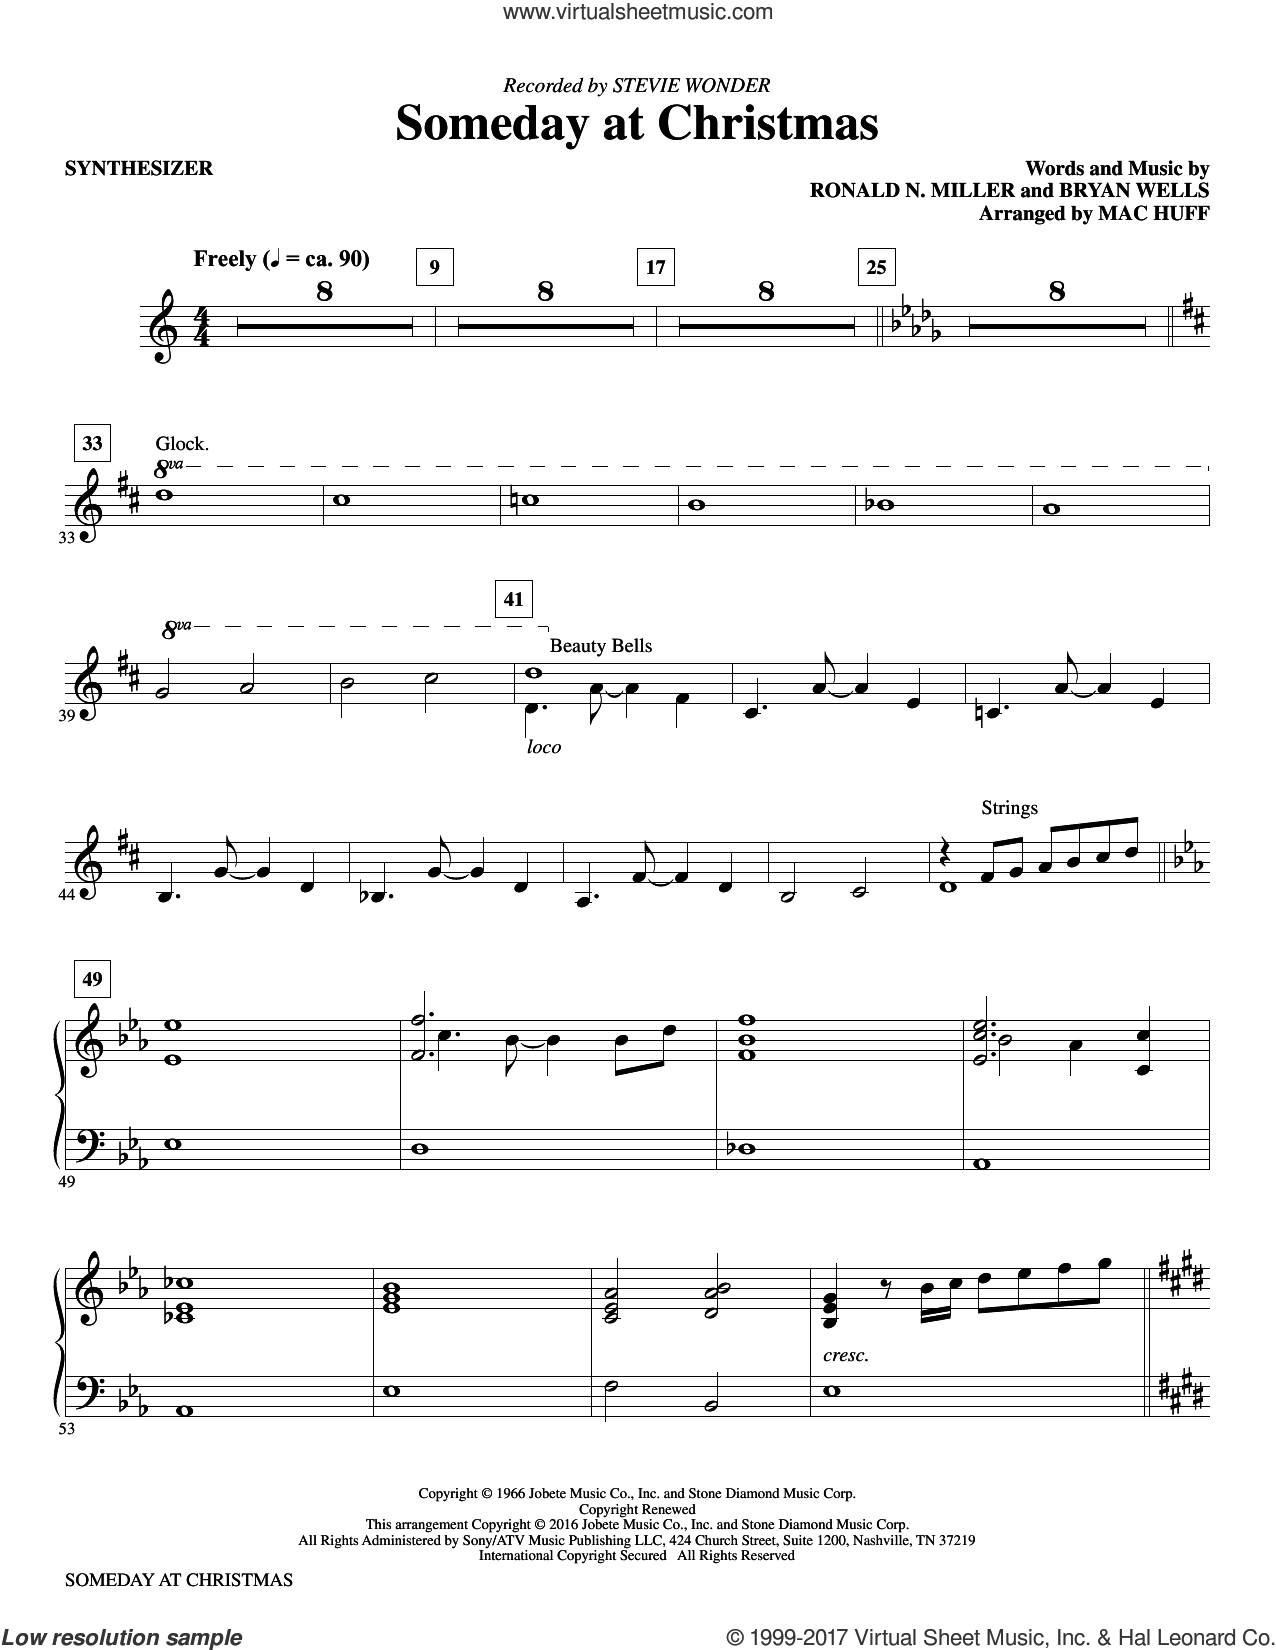 Someday at Christmas (complete set of parts) sheet music for orchestra/band by Mac Huff, Bryan Wells and Ronald N. Miller, intermediate skill level